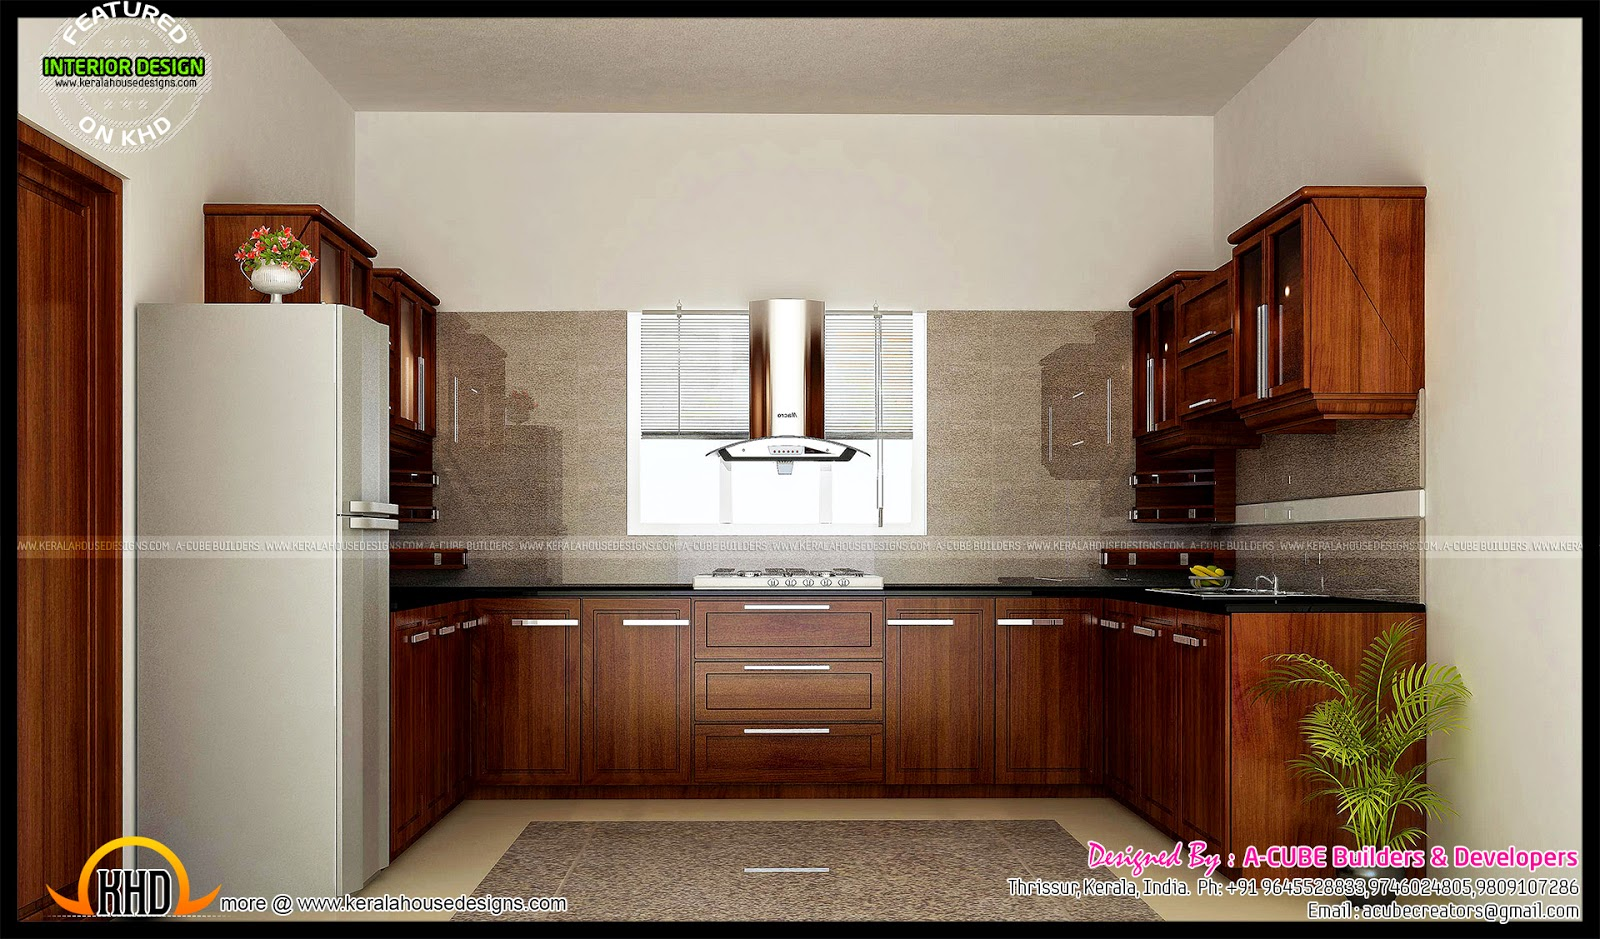 kitchen-Interior.jpg